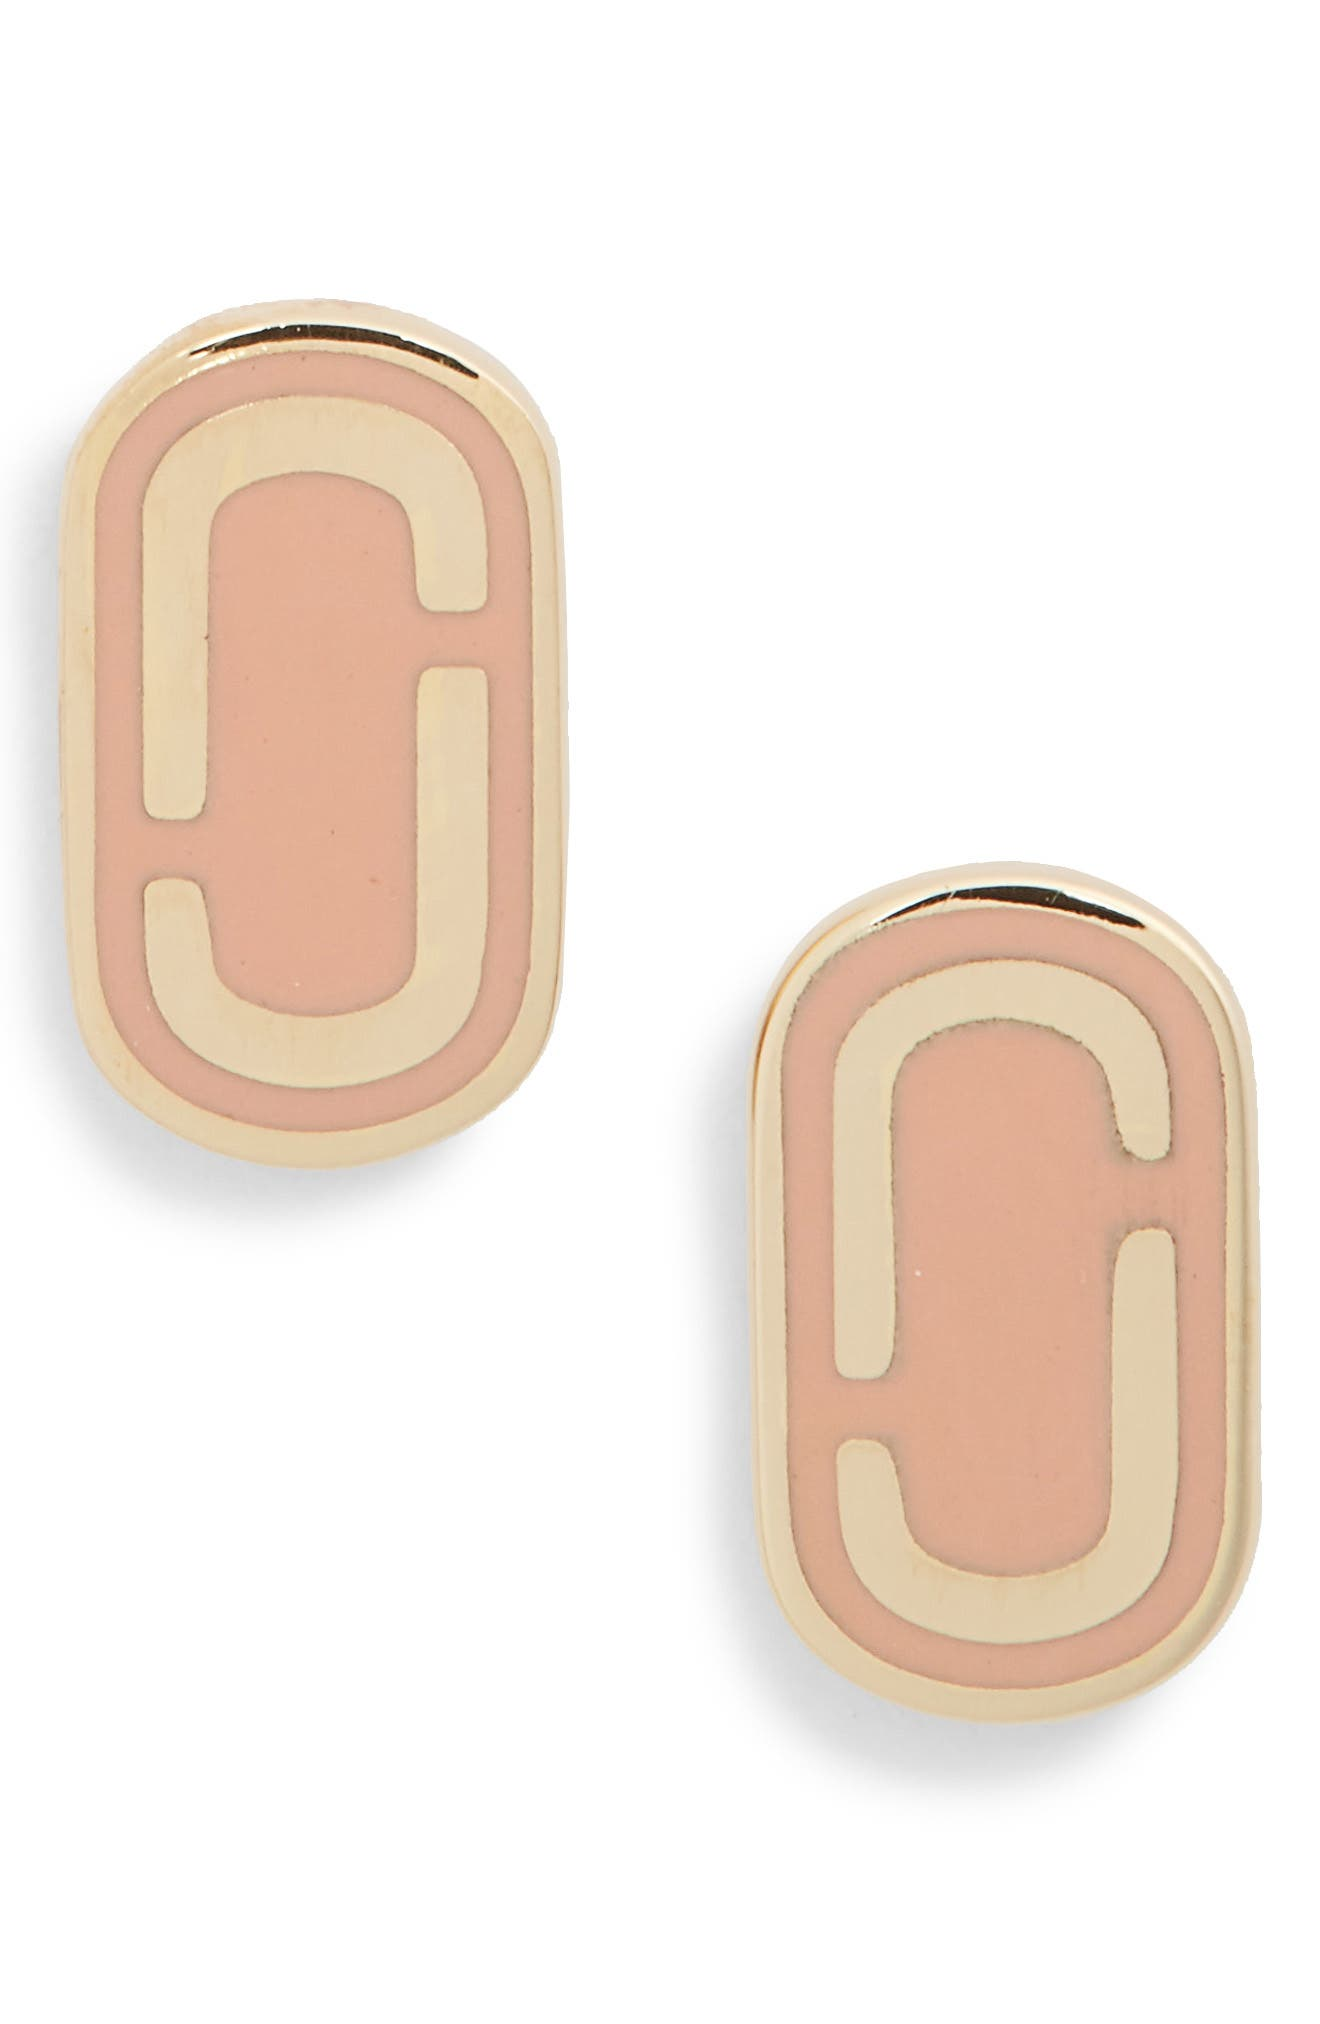 Icon Enamel Stud Earrings,                             Main thumbnail 3, color,